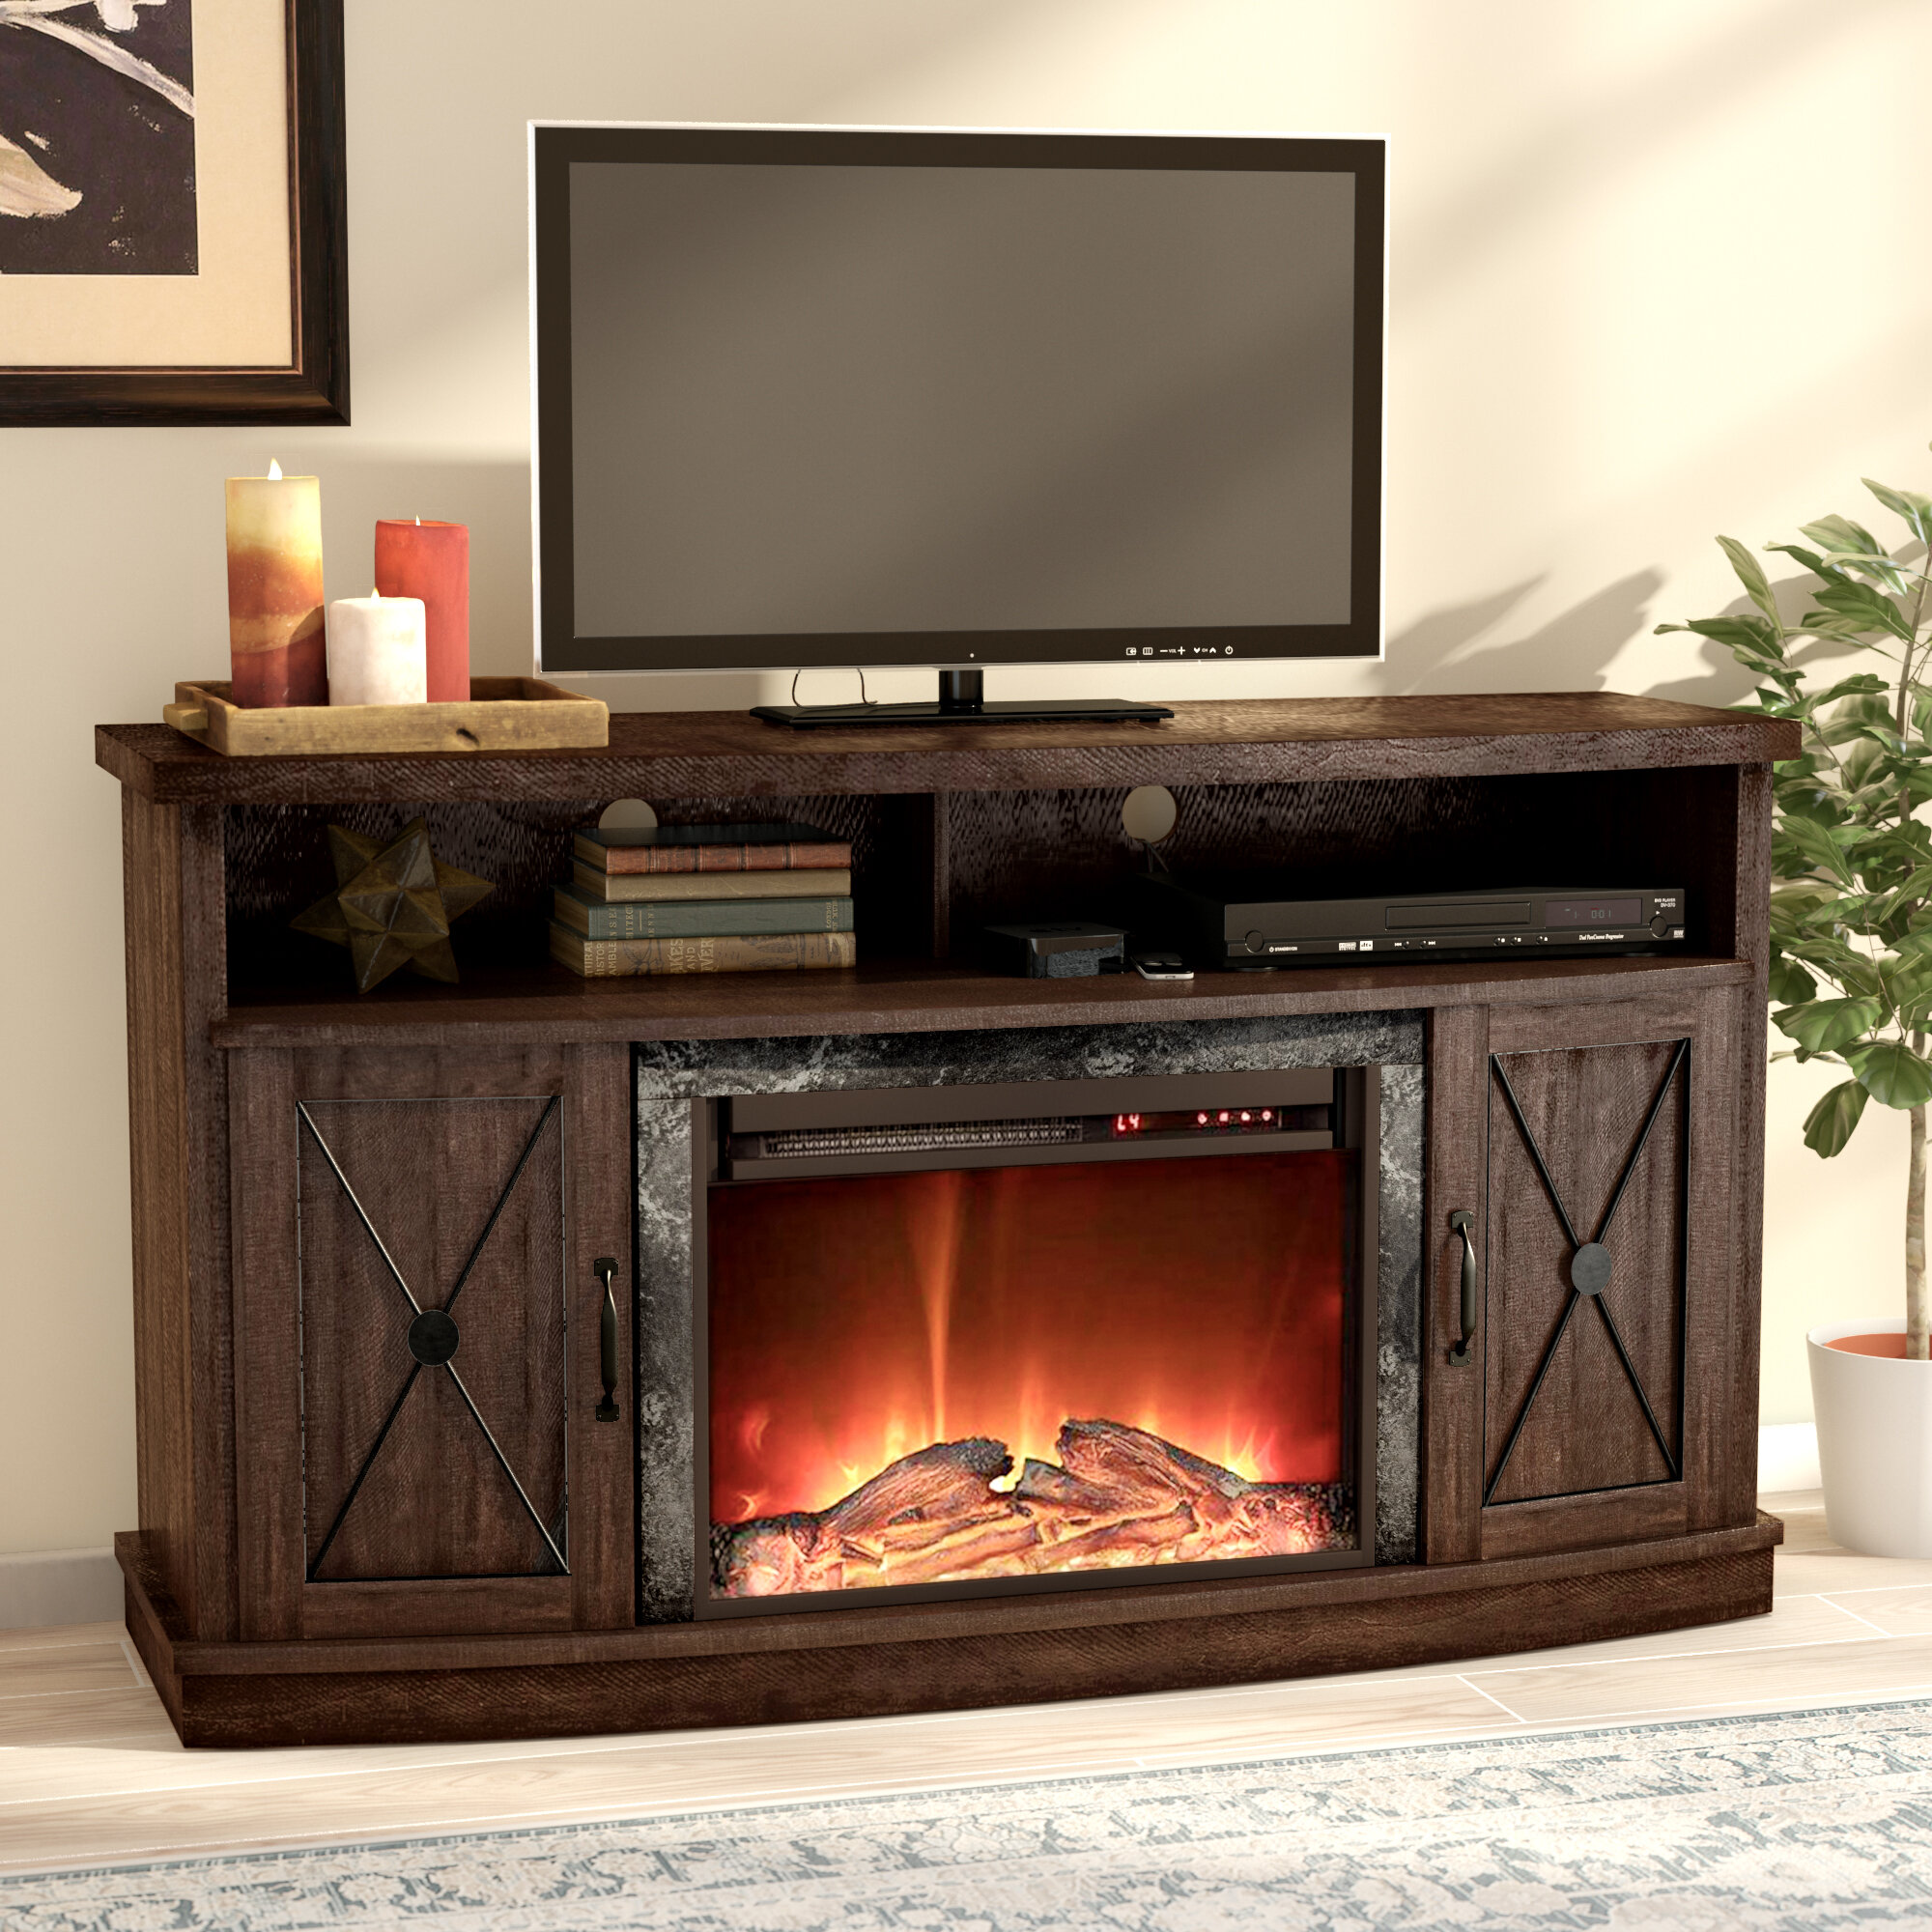 Darby Home Co Schuyler Tv Stand For Tvs Up To 60 With Electric Fireplace Reviews Wayfair